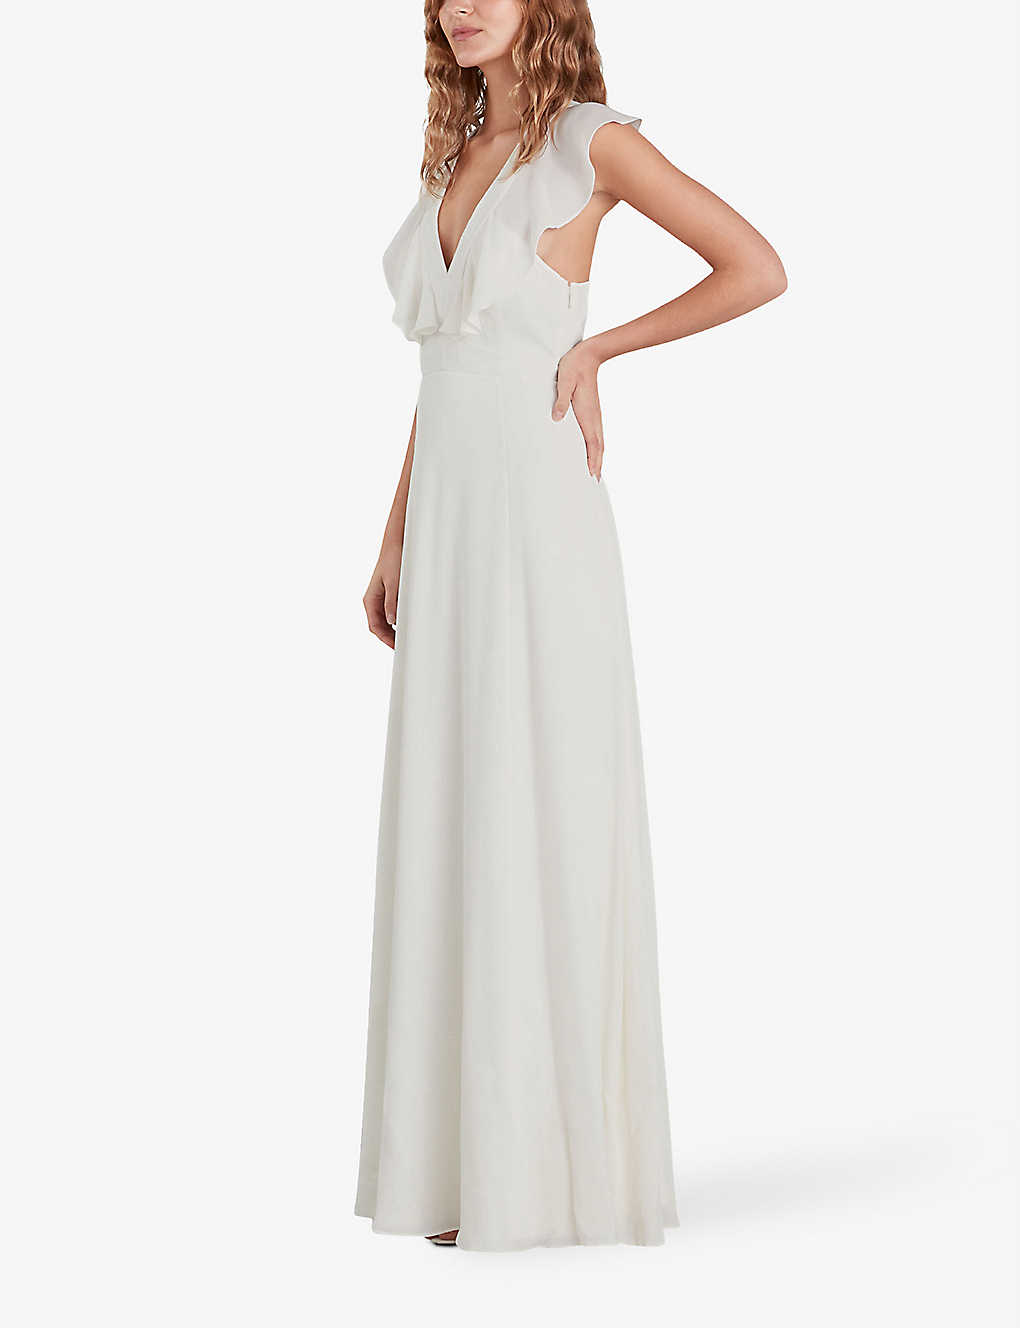 WHISTLES: Eve ruffled silk wedding dress